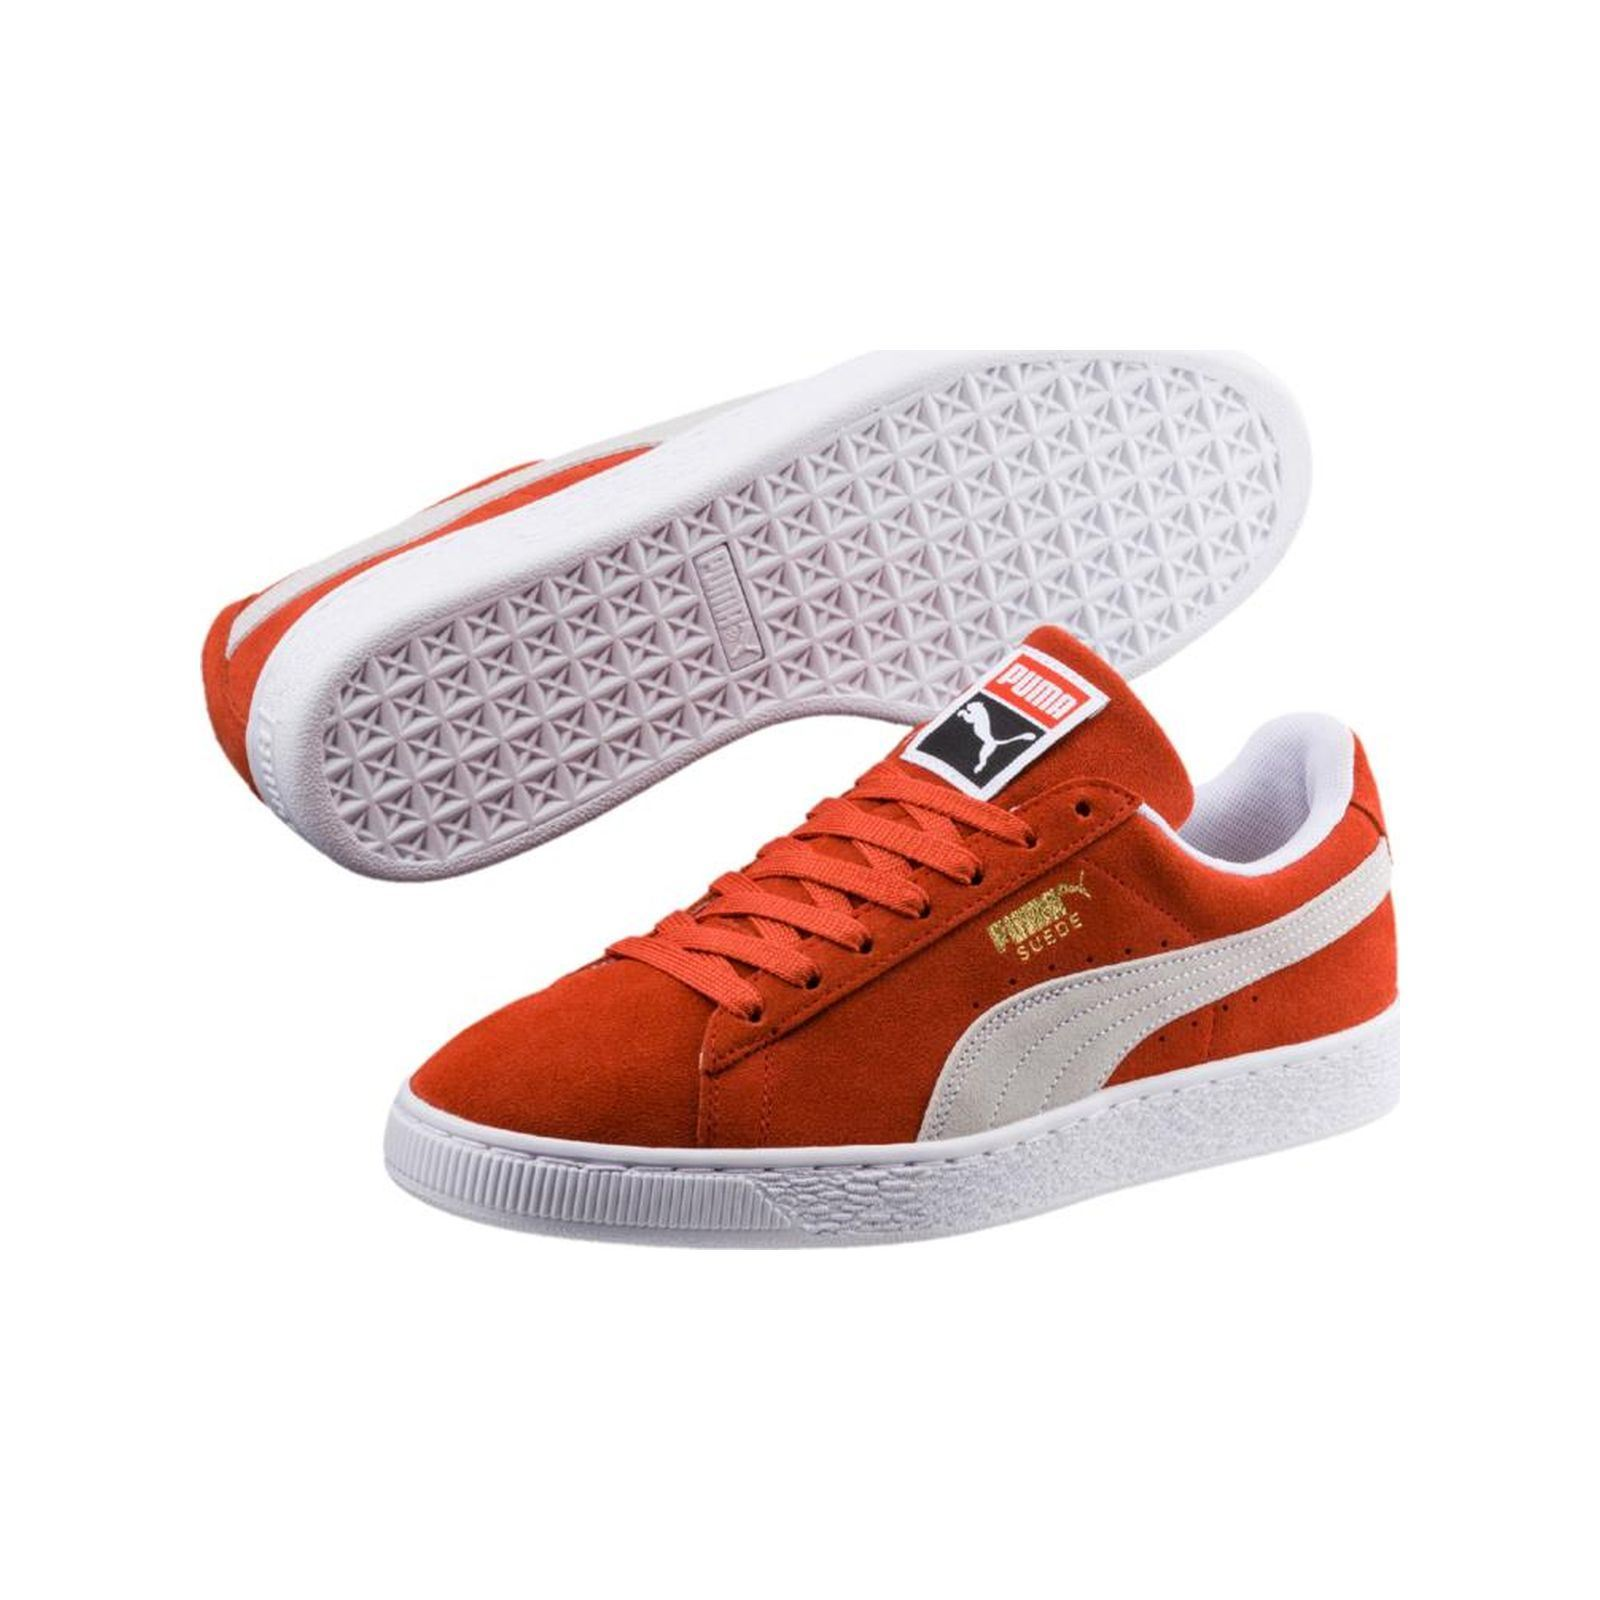 Puma Suede classic - Baskets en cuir - orange  Baskets